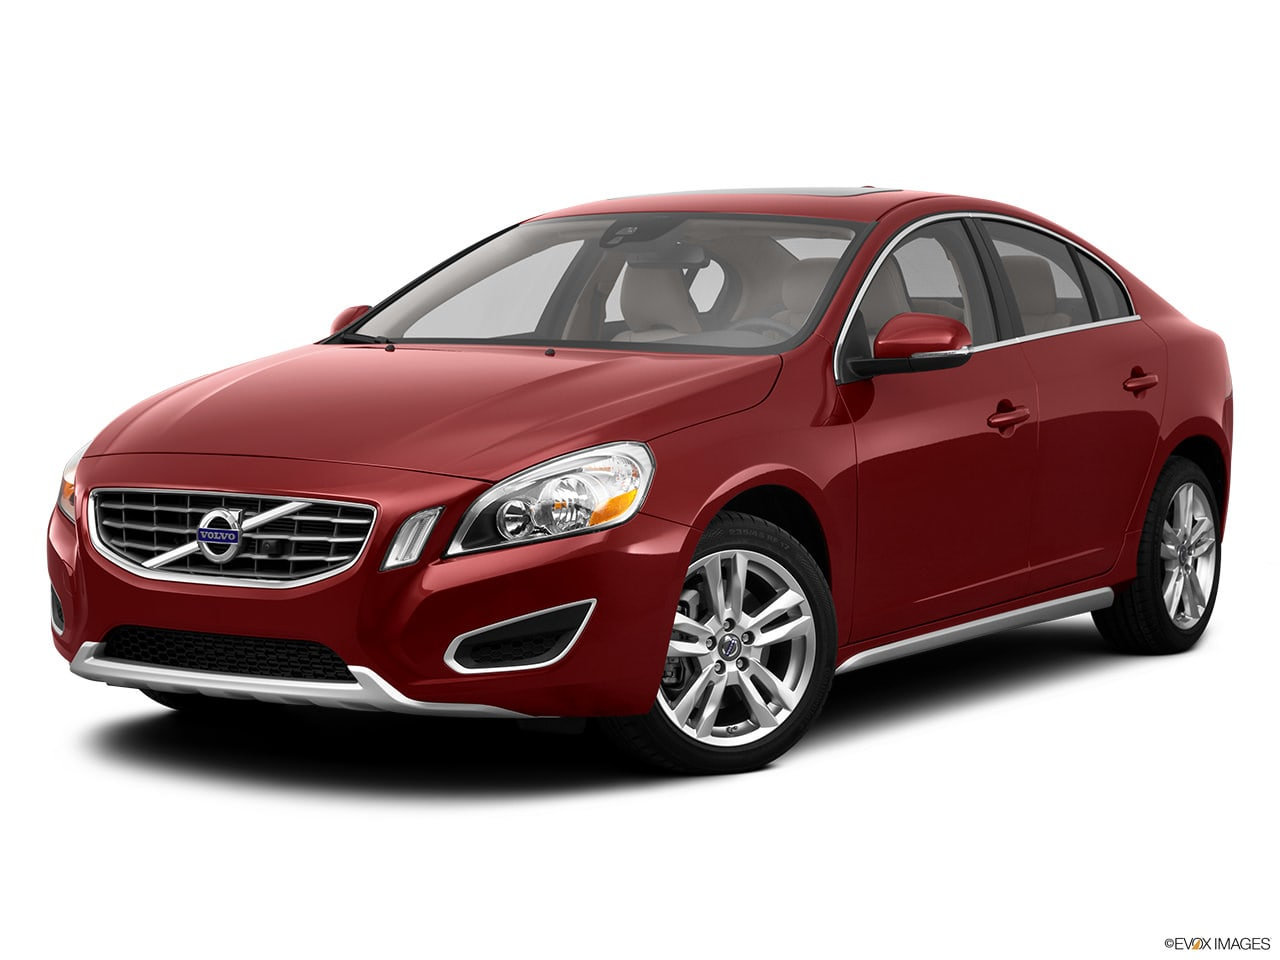 A Buyer's Guide to the 2012 Volvo S60 | YourMechanic Advice